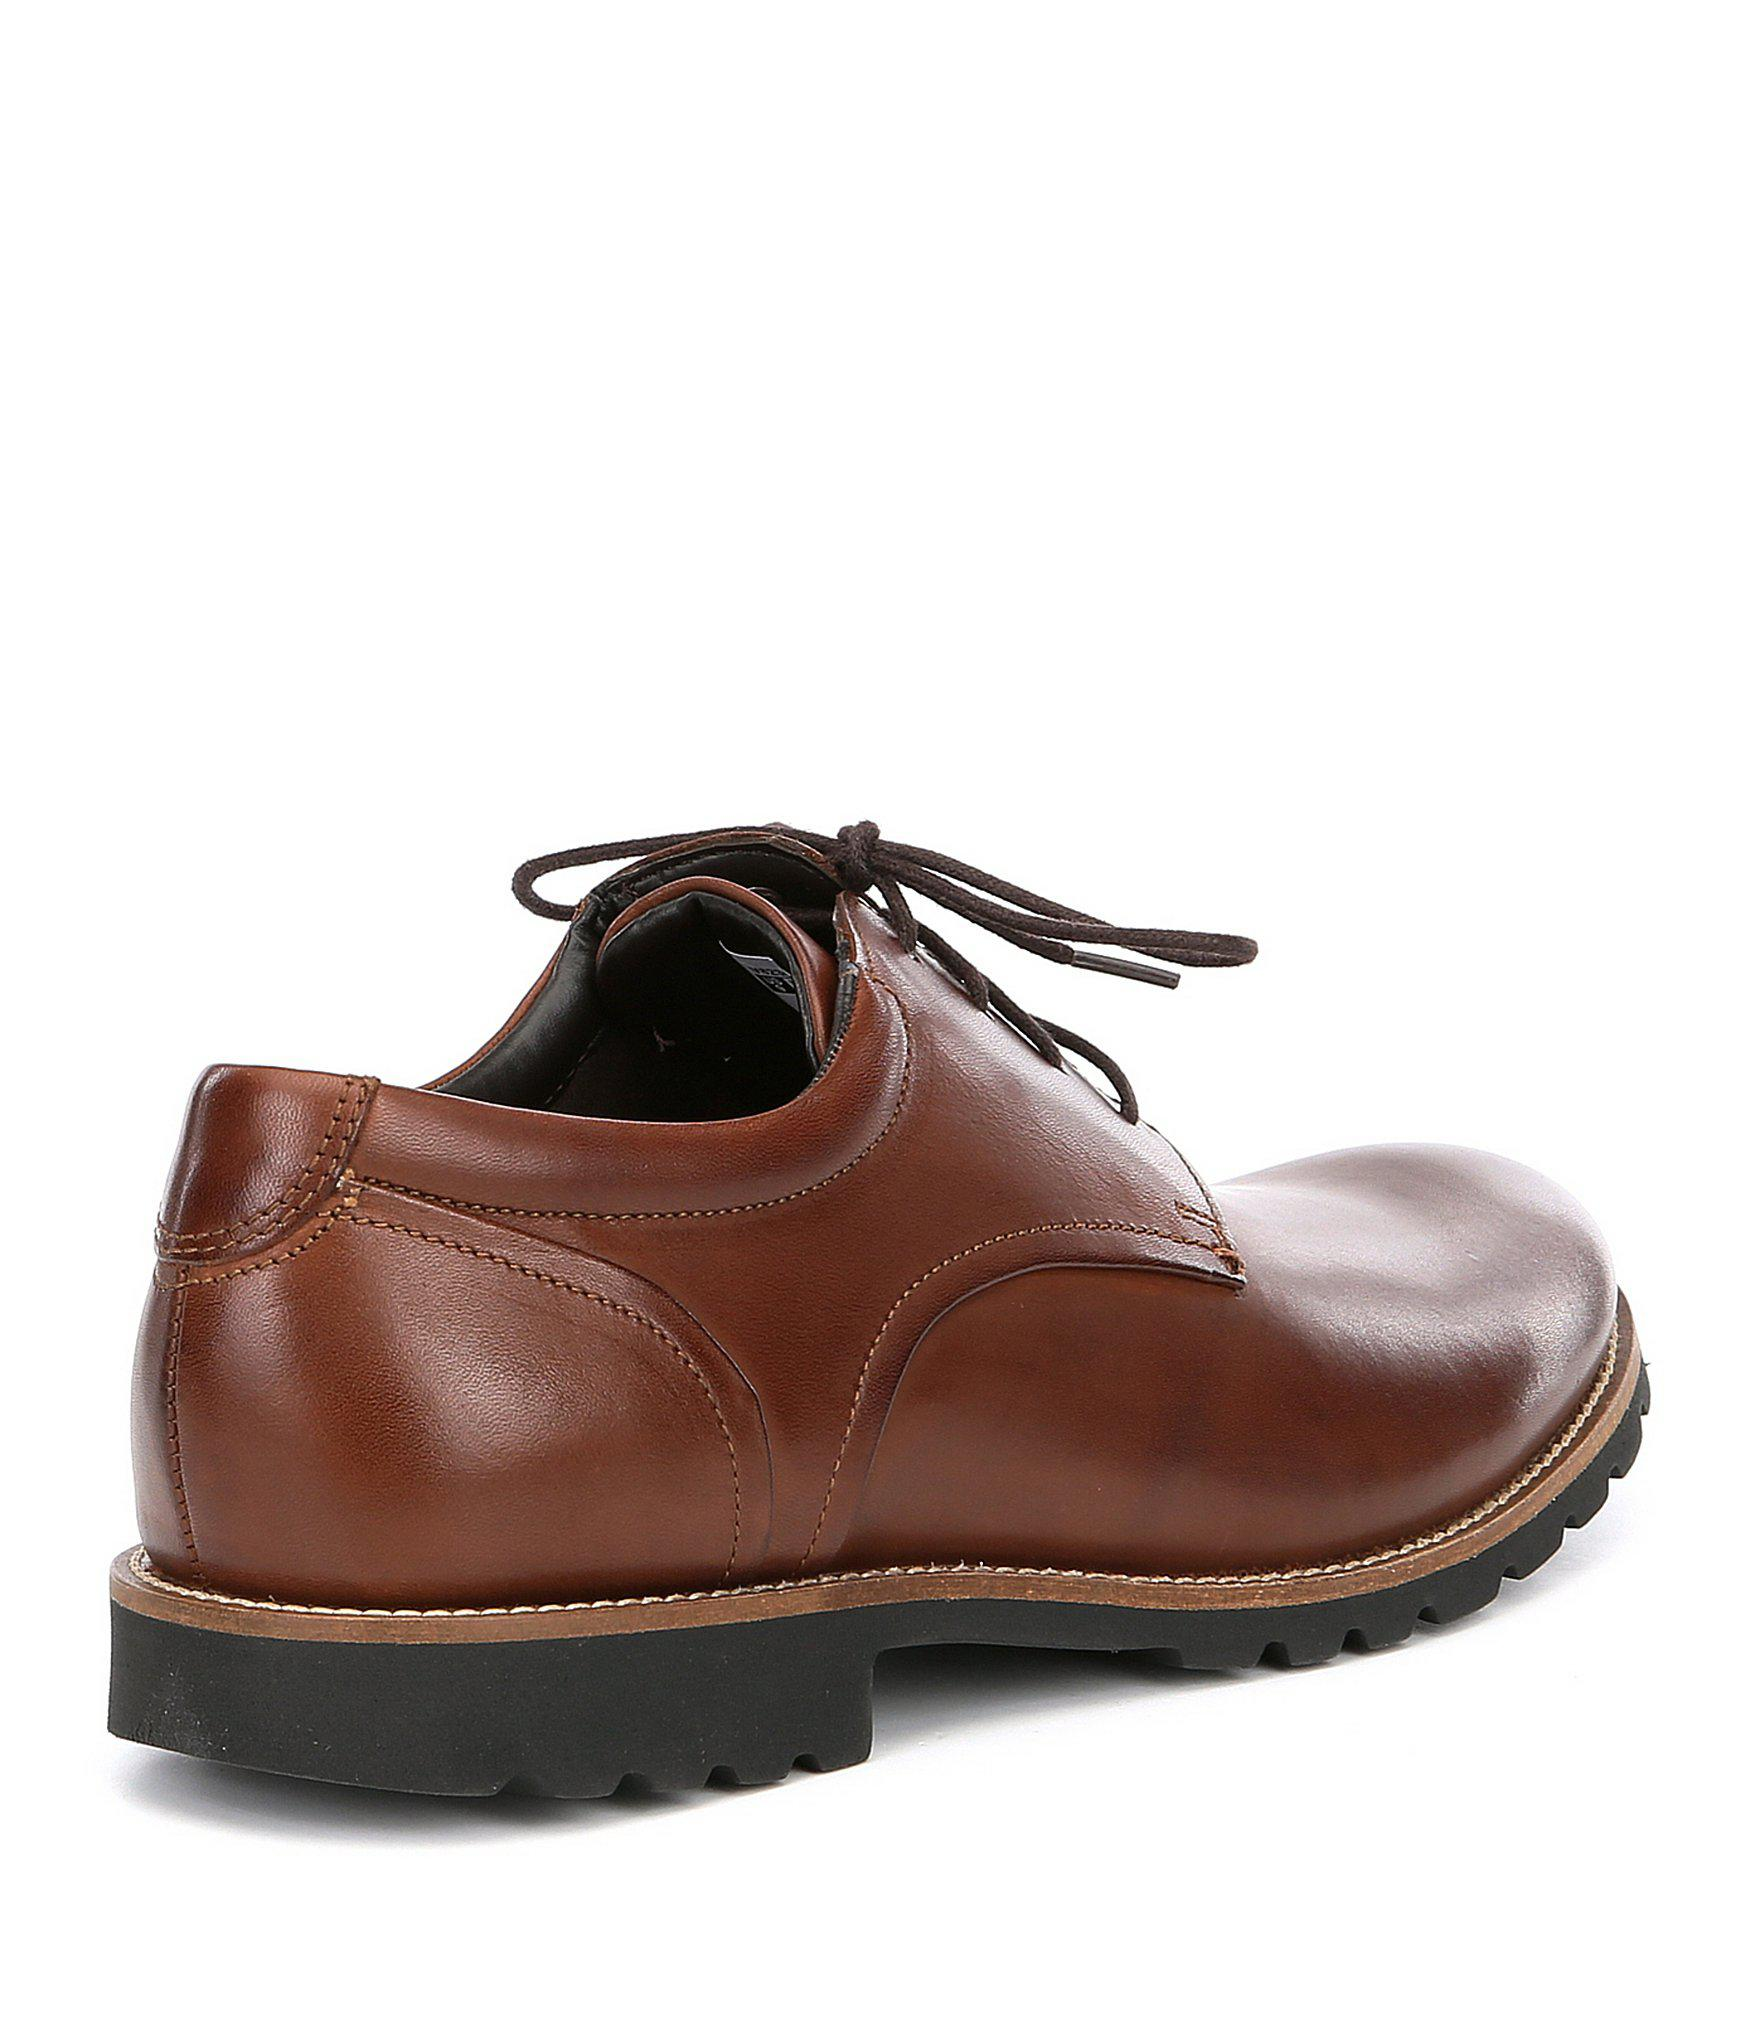 9d66cc0c5e05 Rockport - Brown Men s Colben Oxfords for Men - Lyst. View fullscreen